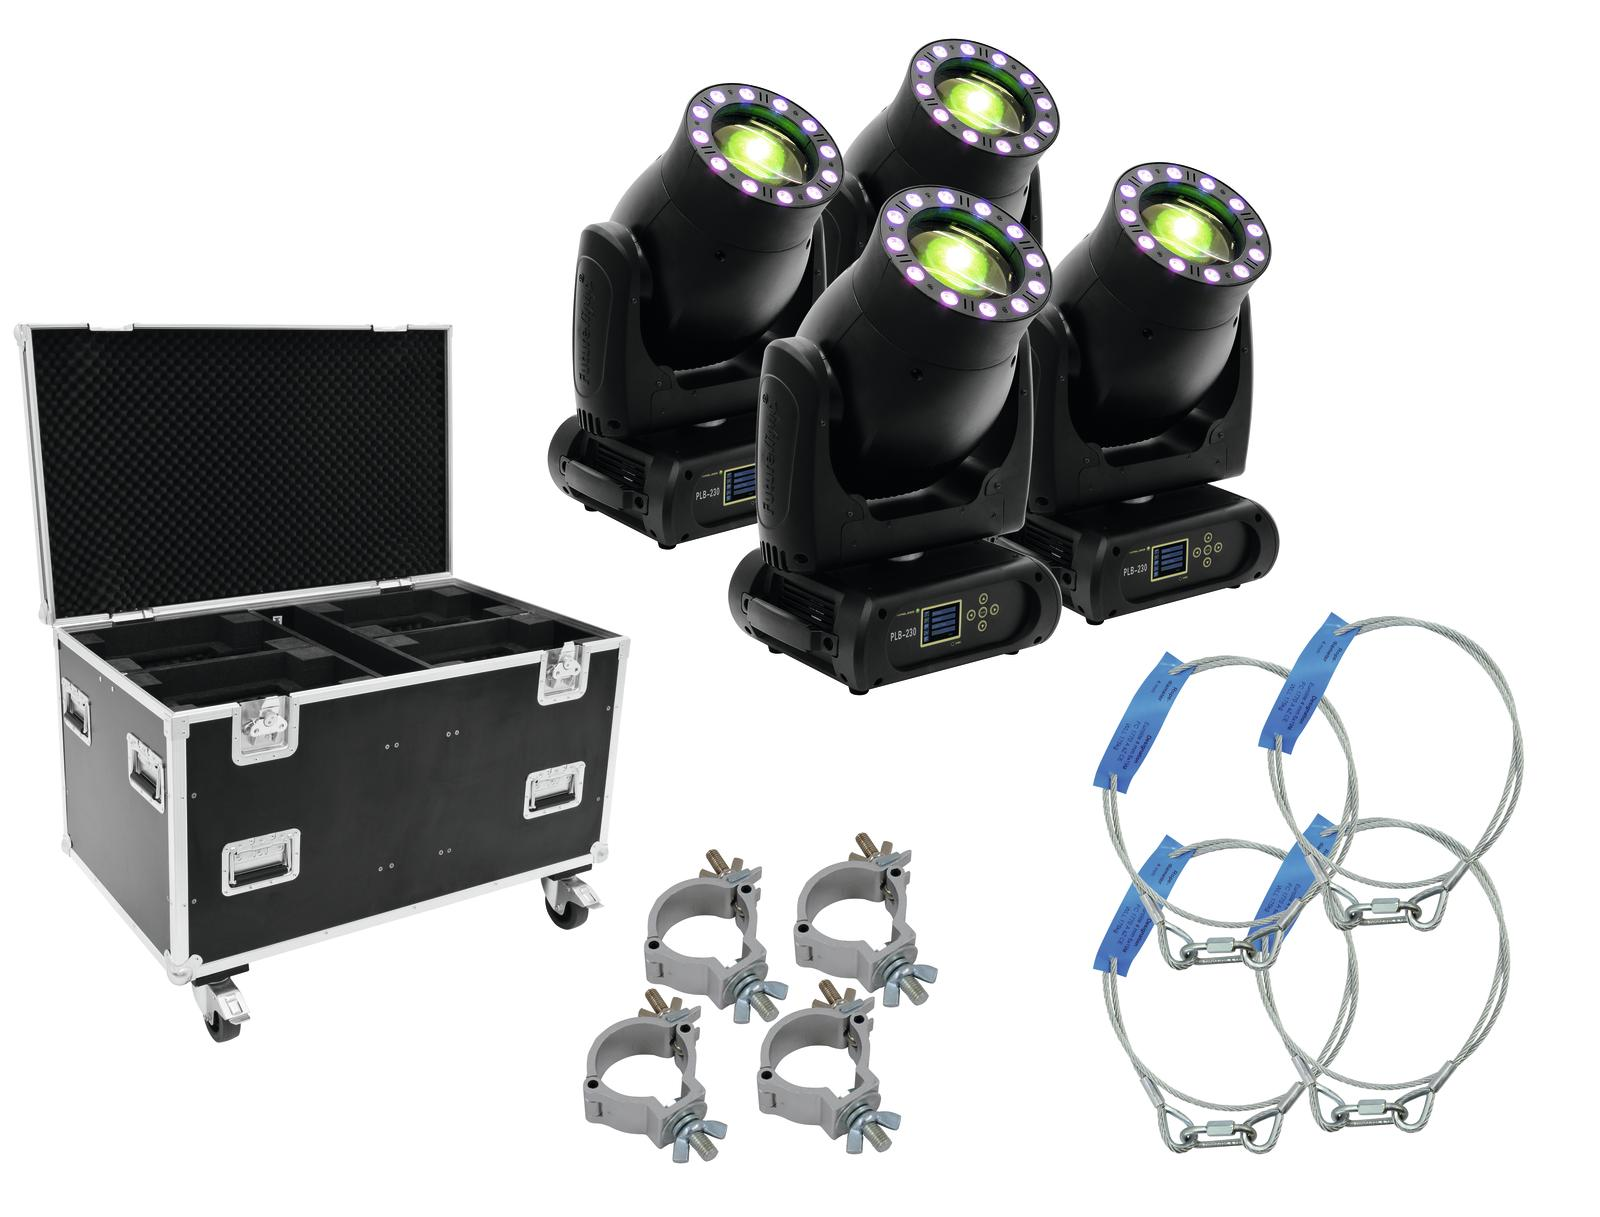 FUTURELIGHT Set 4x PLB-230 + caso